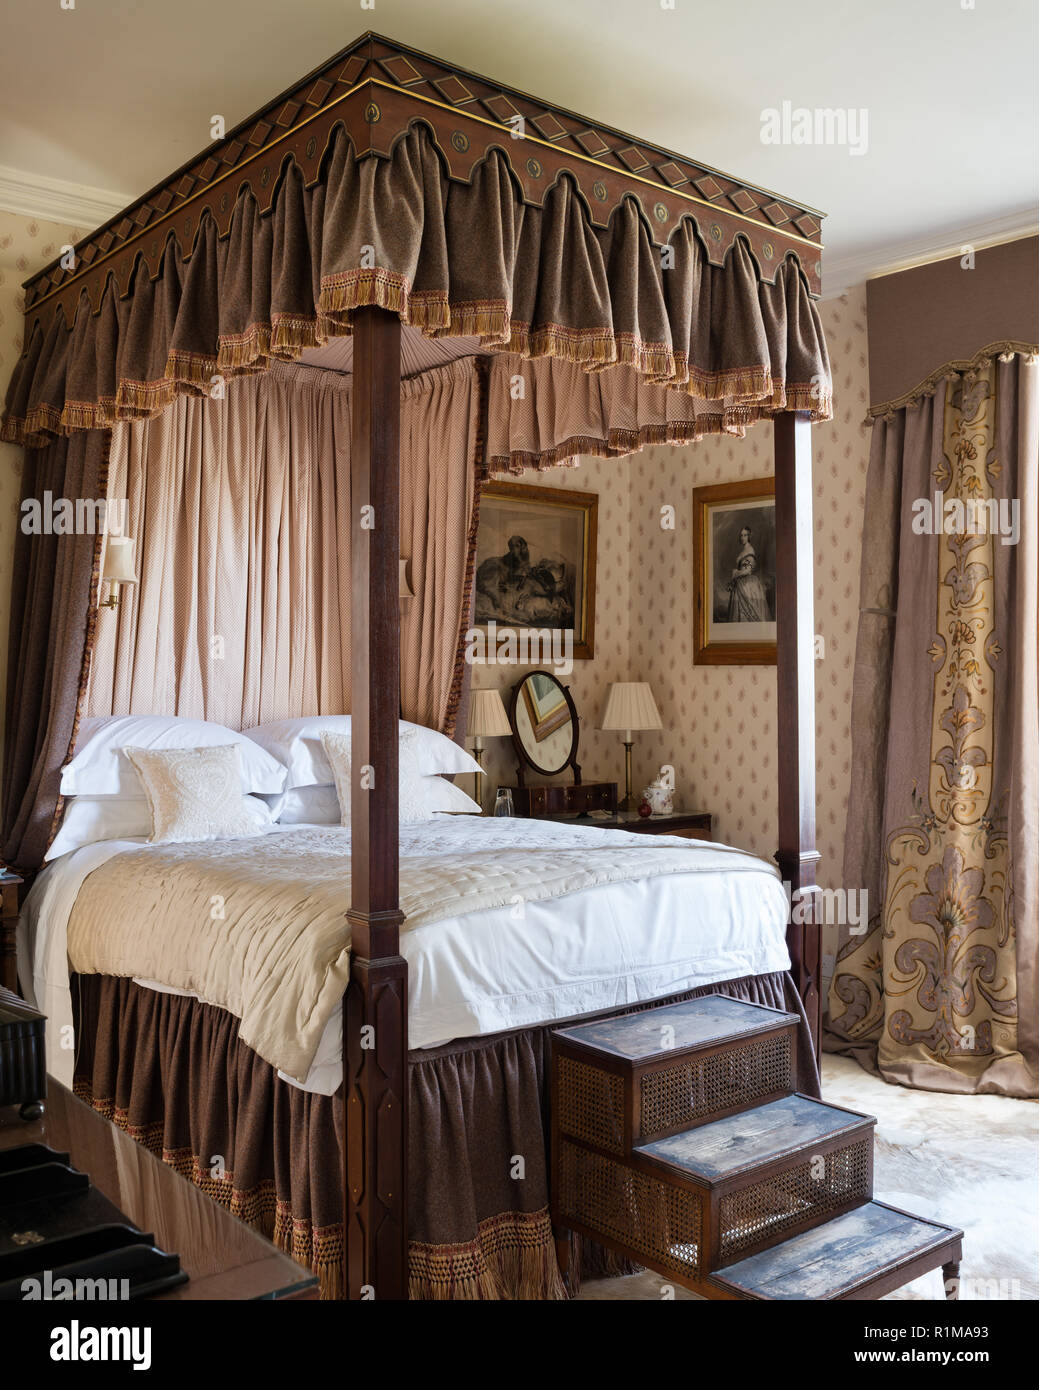 Brown and white canopy bed Stock Photo